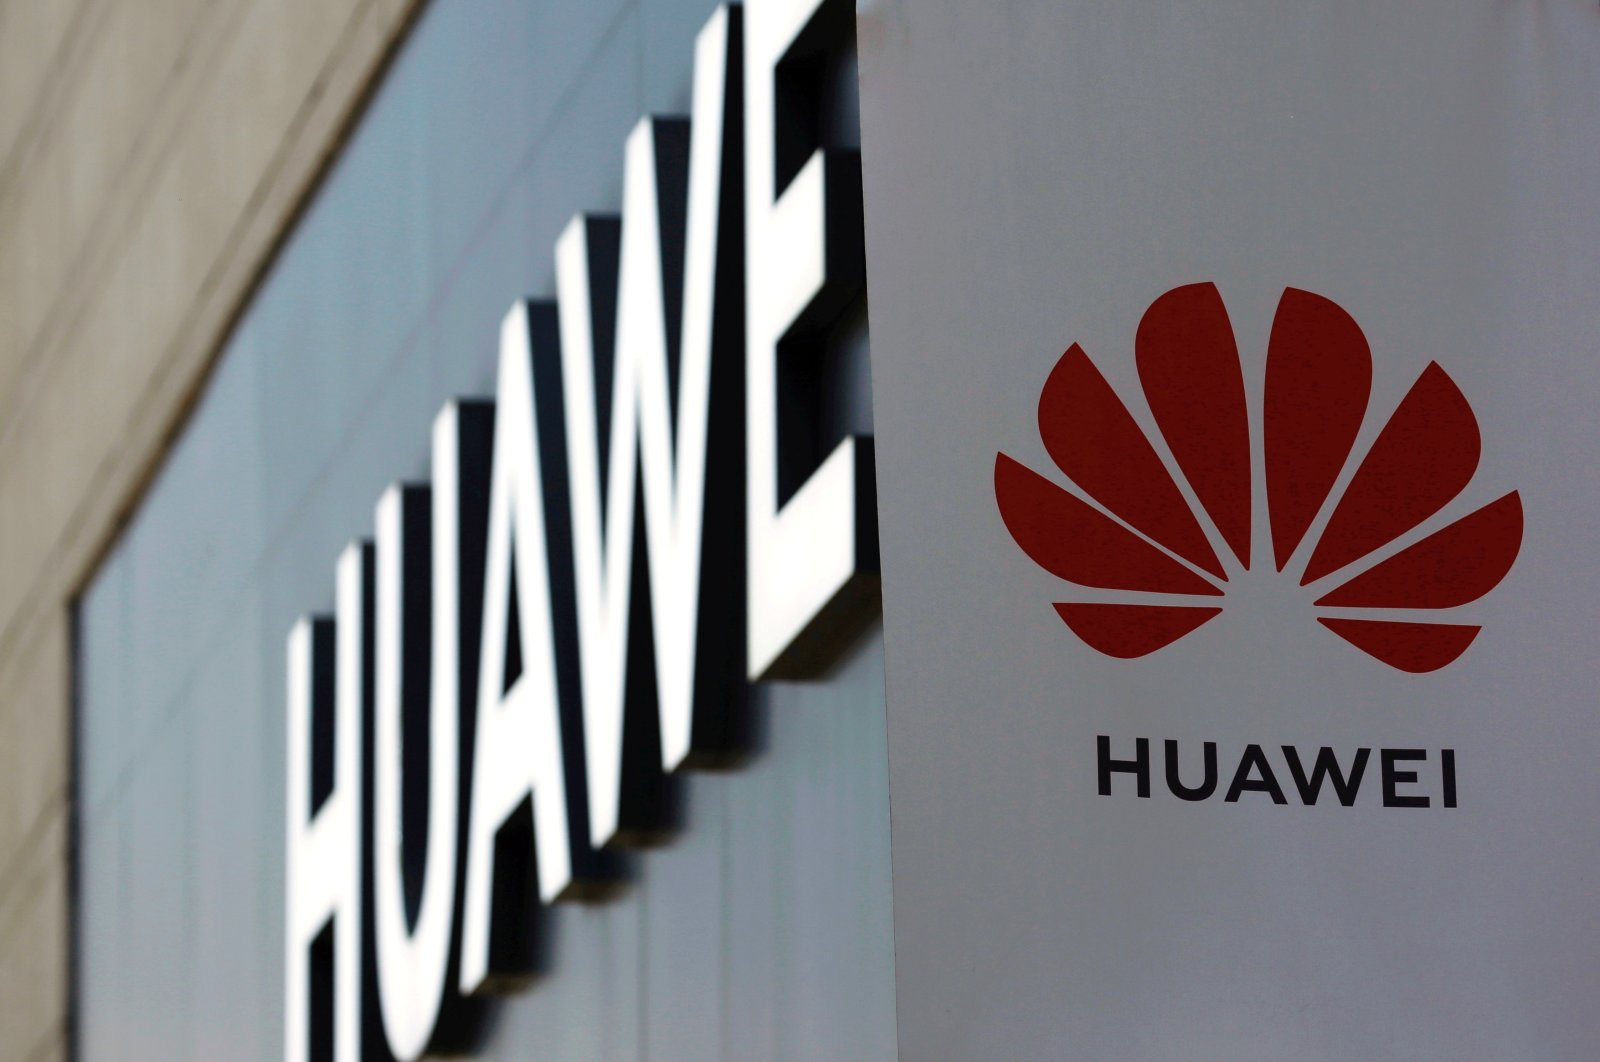 A Huawei sign is seen outside its store at a shopping complex in Beijing, China, July 14, 2020. (REUTERS Photo)